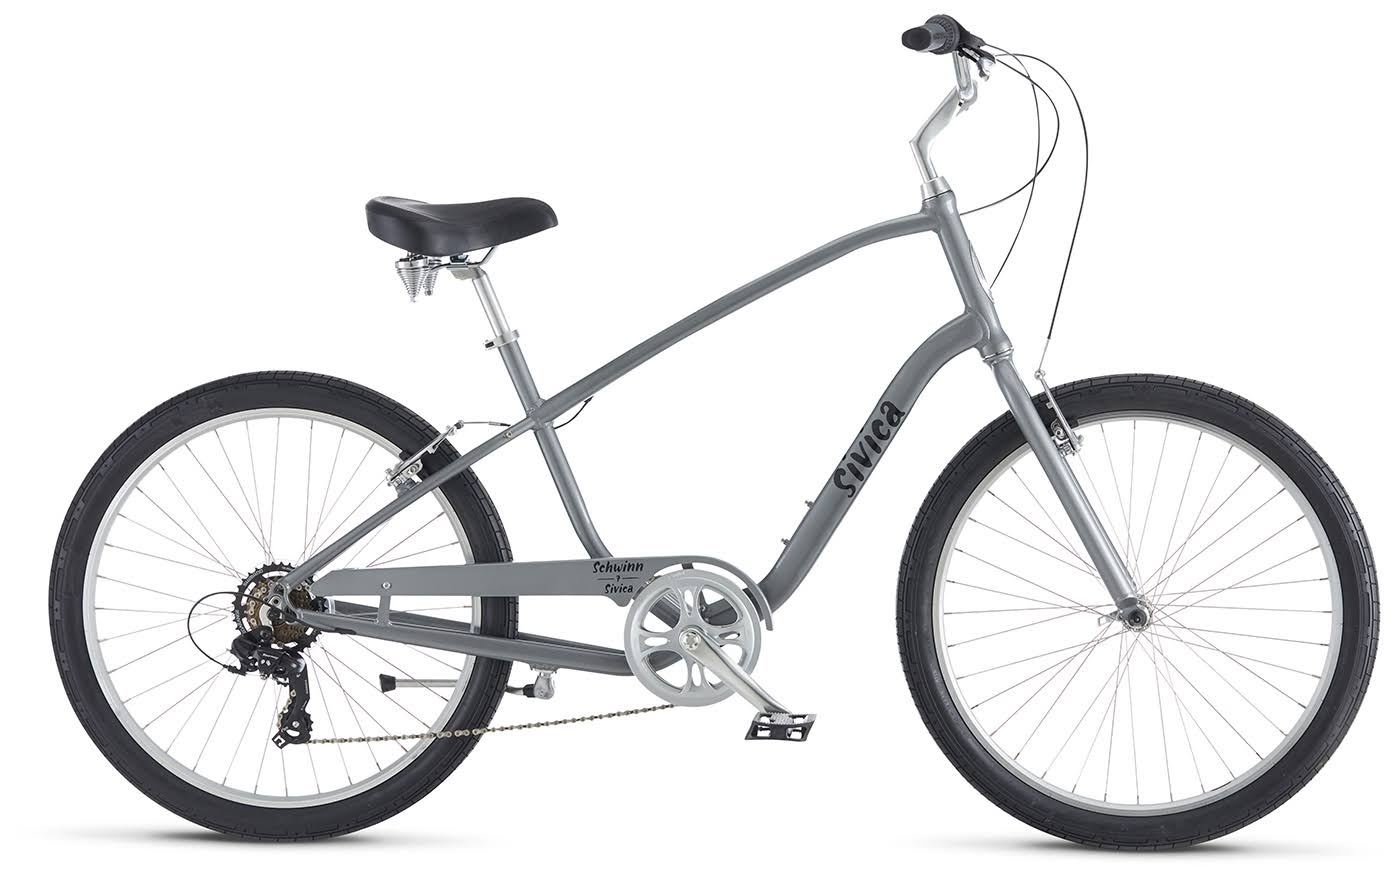 Schwinn S37257M60OS Signature Men's Sivica 7 Cruiser Bike - Grey, 26""